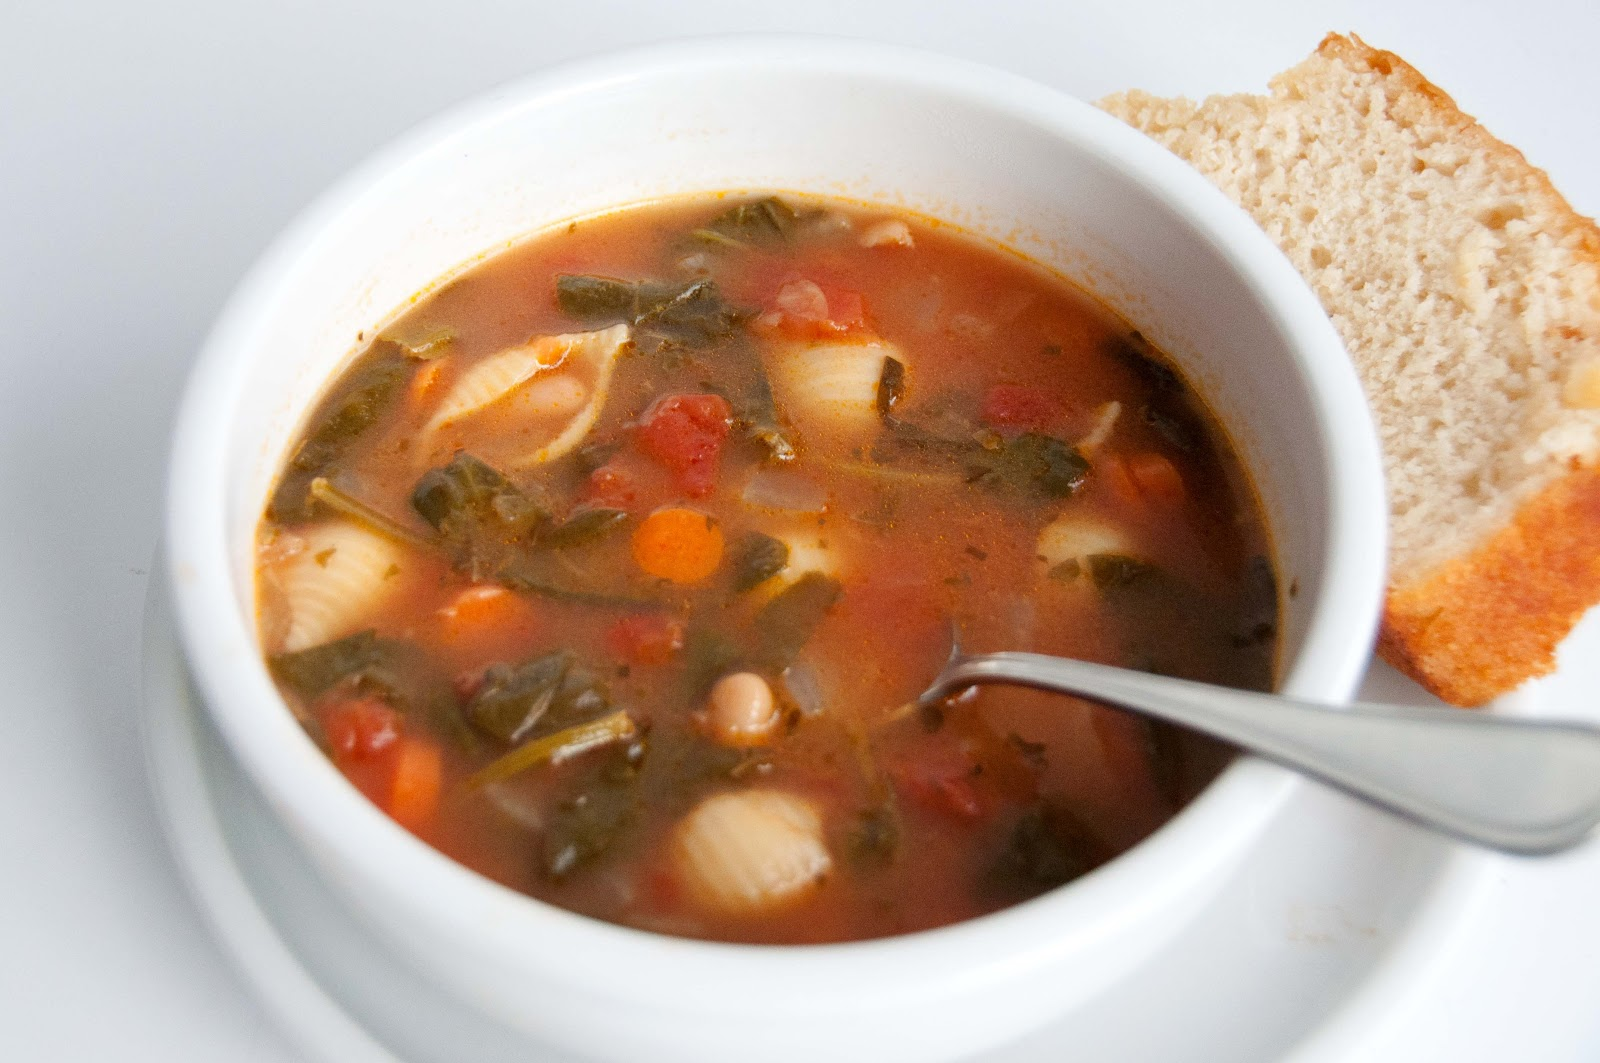 Soup recipe of the day